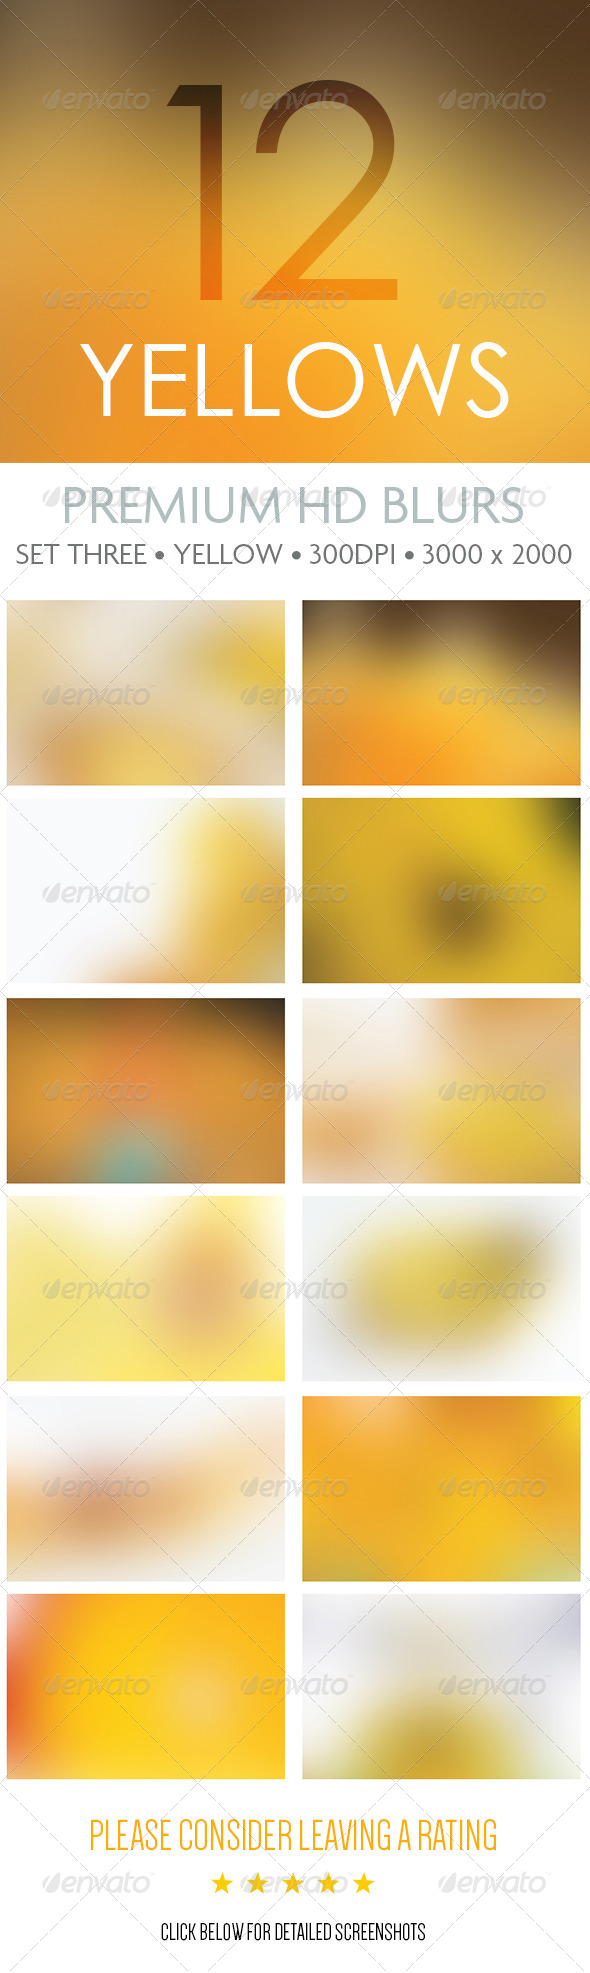 Premium HD Blurs - Set Three - Backgrounds Graphics